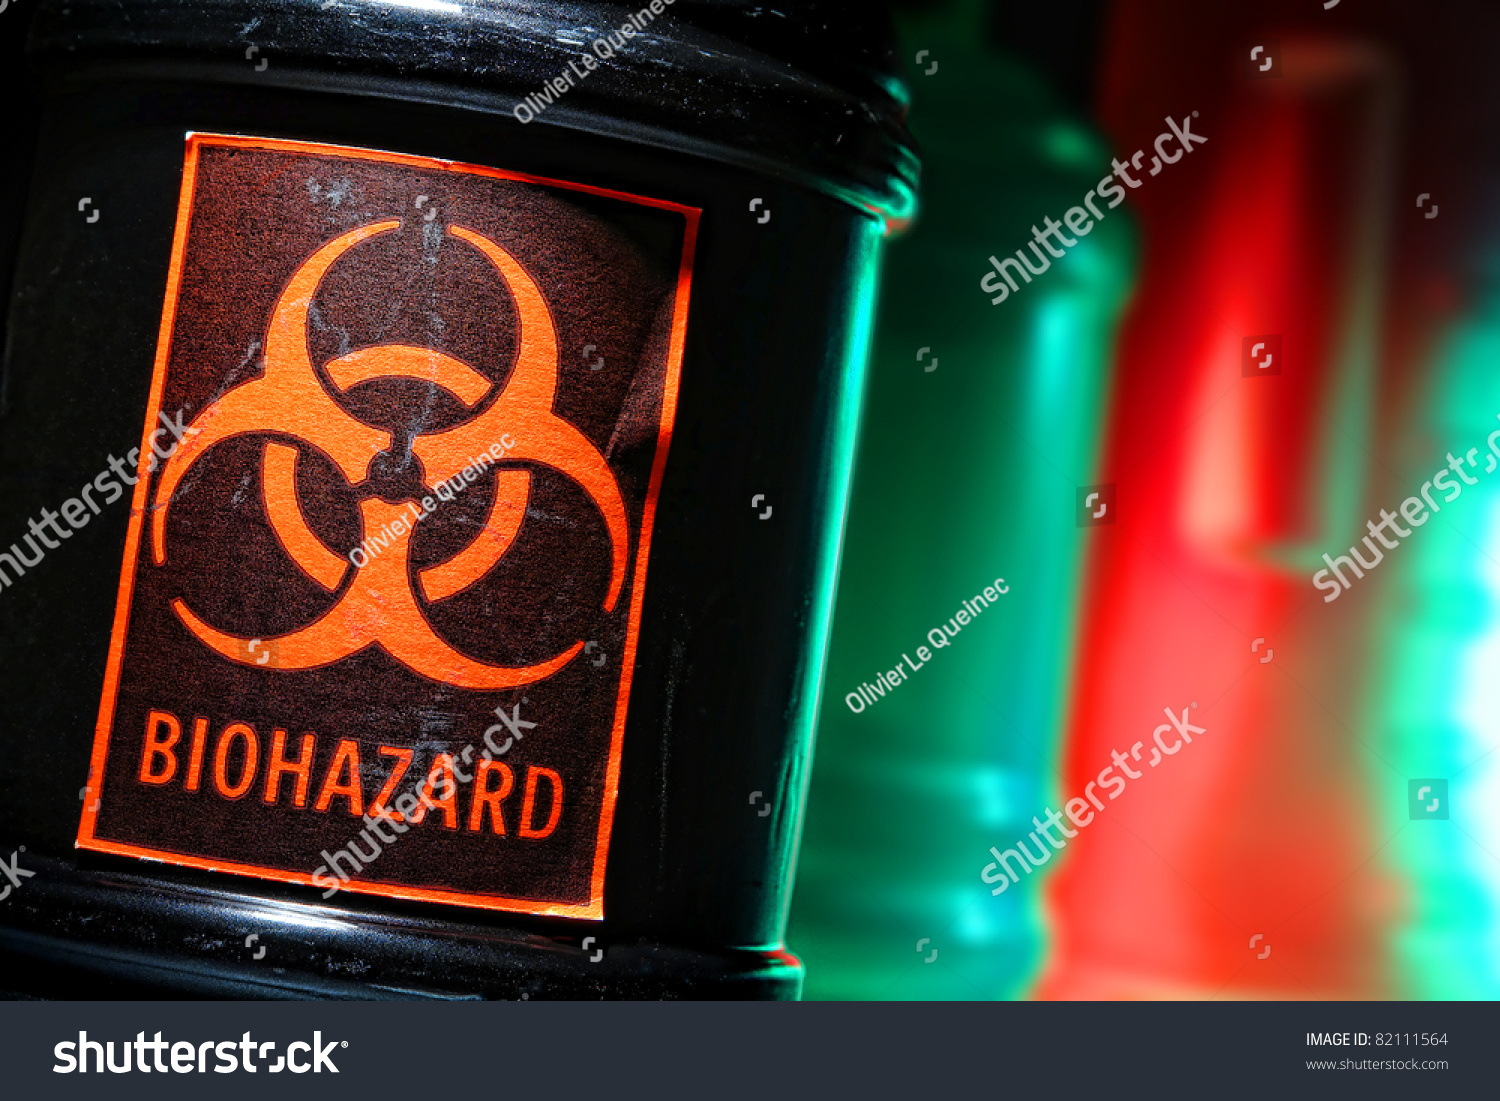 Grunge biohazard universal symbol danger warning stock photo grunge biohazard universal symbol danger warning label on a dangerous toxic waste black container in a biocorpaavc